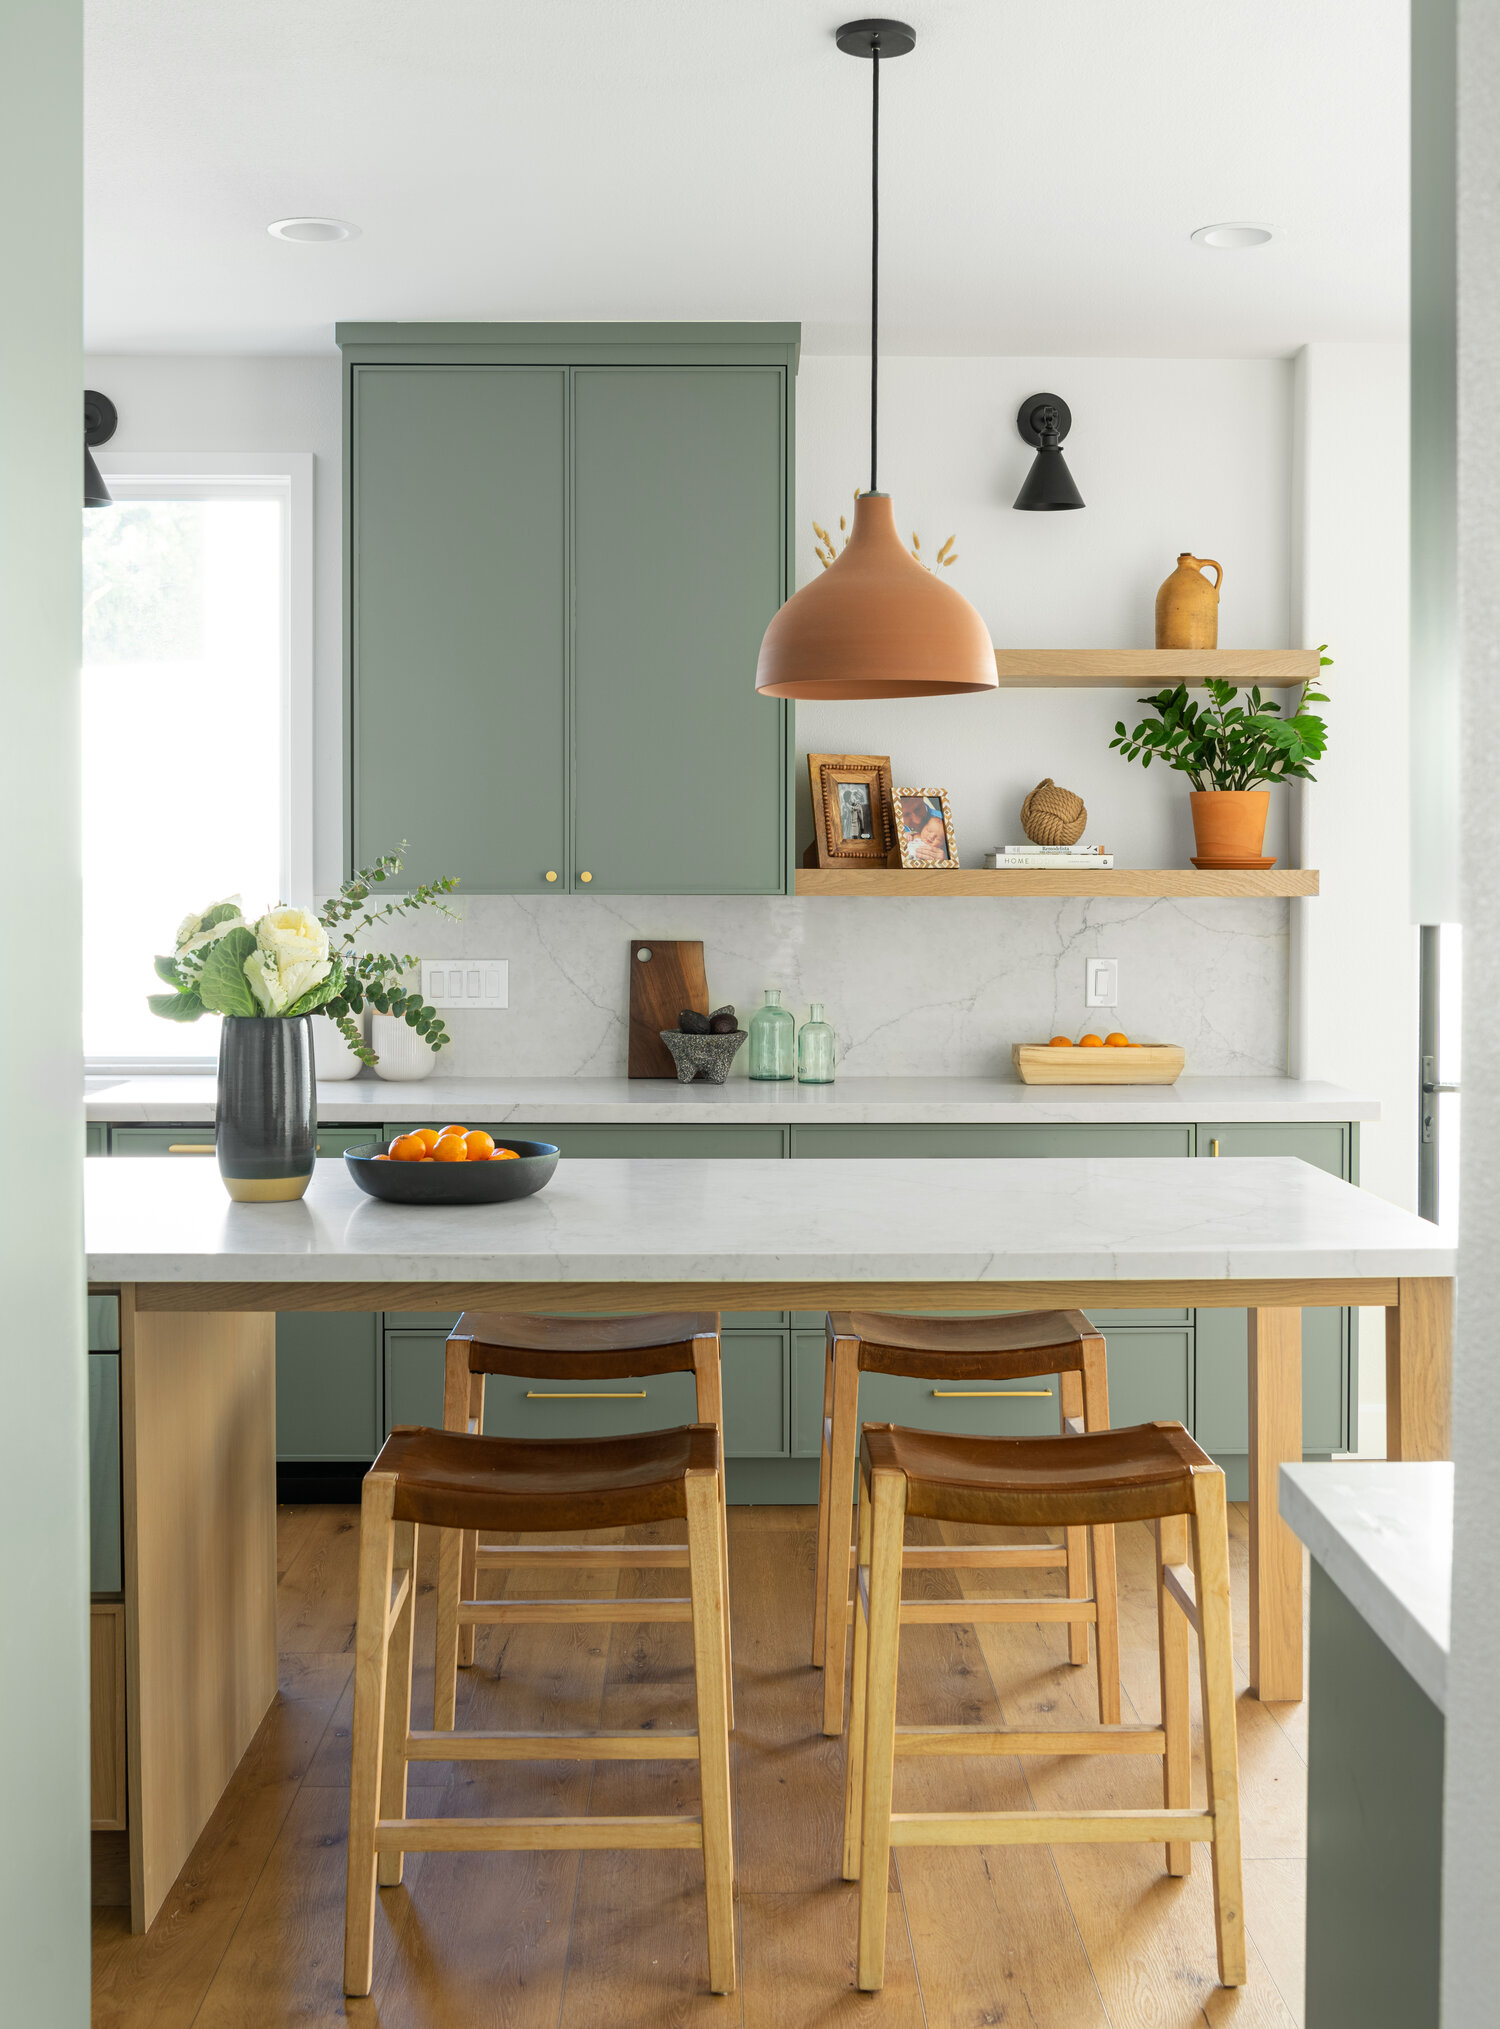 15 Gorgeous Sage Green Kitchen Cabinet Paint Colors in Action - IMAGE: via Well Done feat. paint color 'Retreat' by Sherwin-Williams